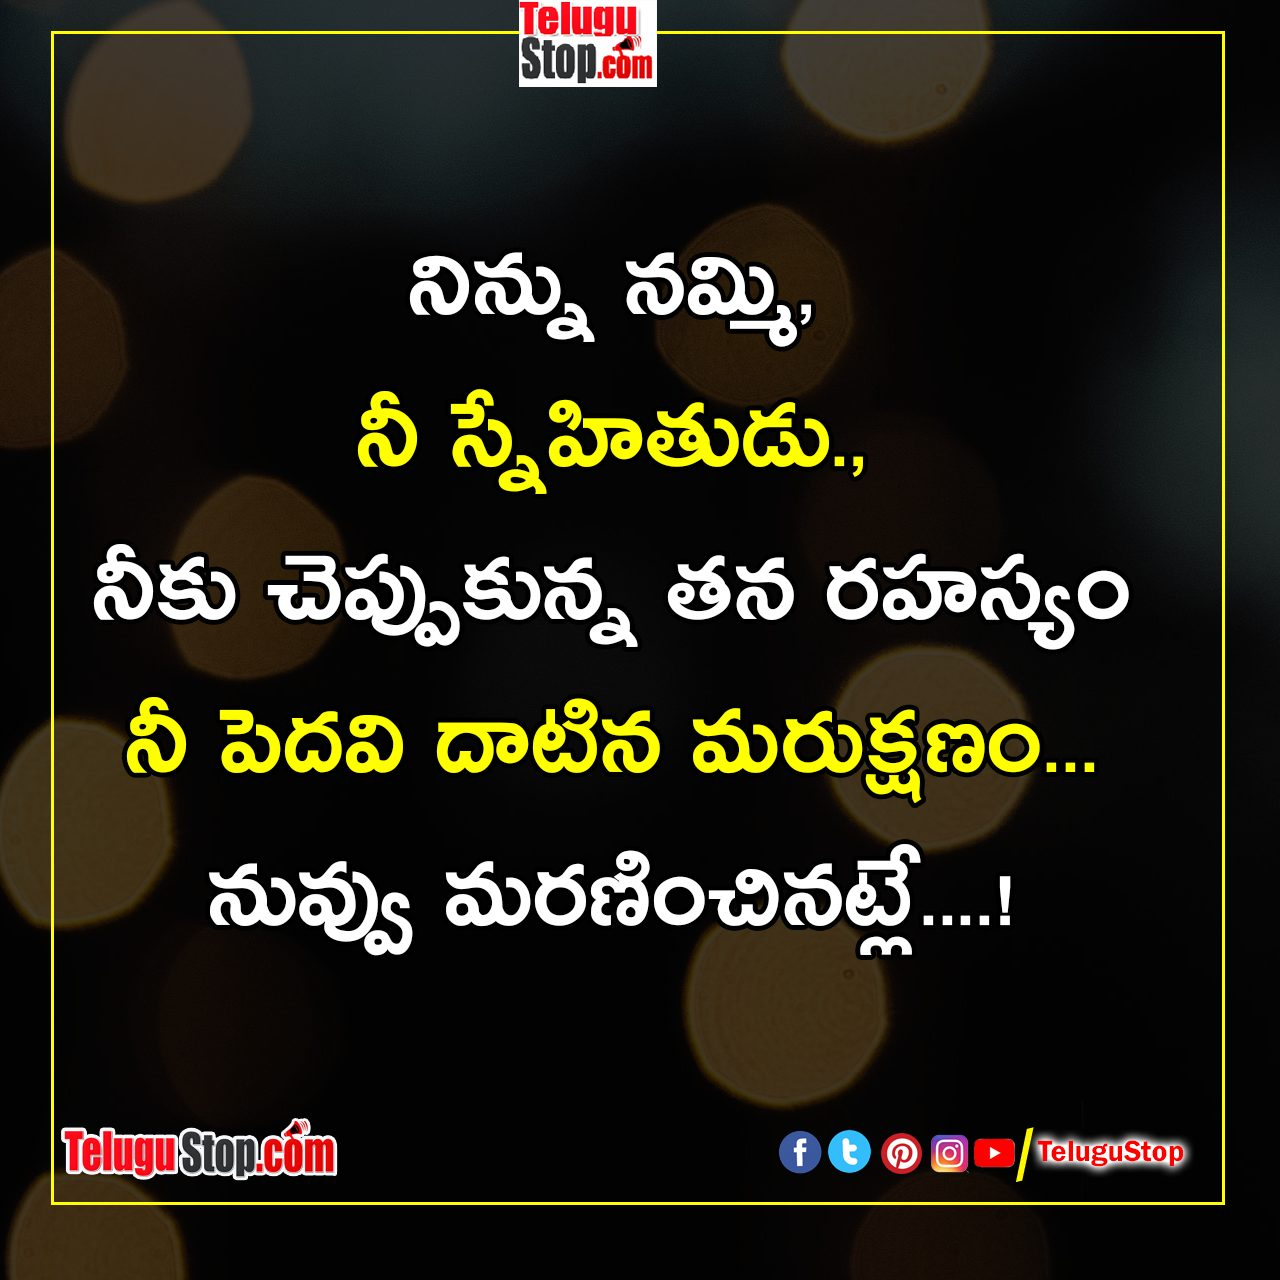 Telugu Dont Get Away From The Good Inspiriational Quotes, Friendship Related Inspiriational Quotes, Girls Respect Inspiriational Quotes, Think Good Inspiriational Quotes-Telugu Daily Quotes - Inspirational/Motivational/Love/Friendship/Good Morning Quote